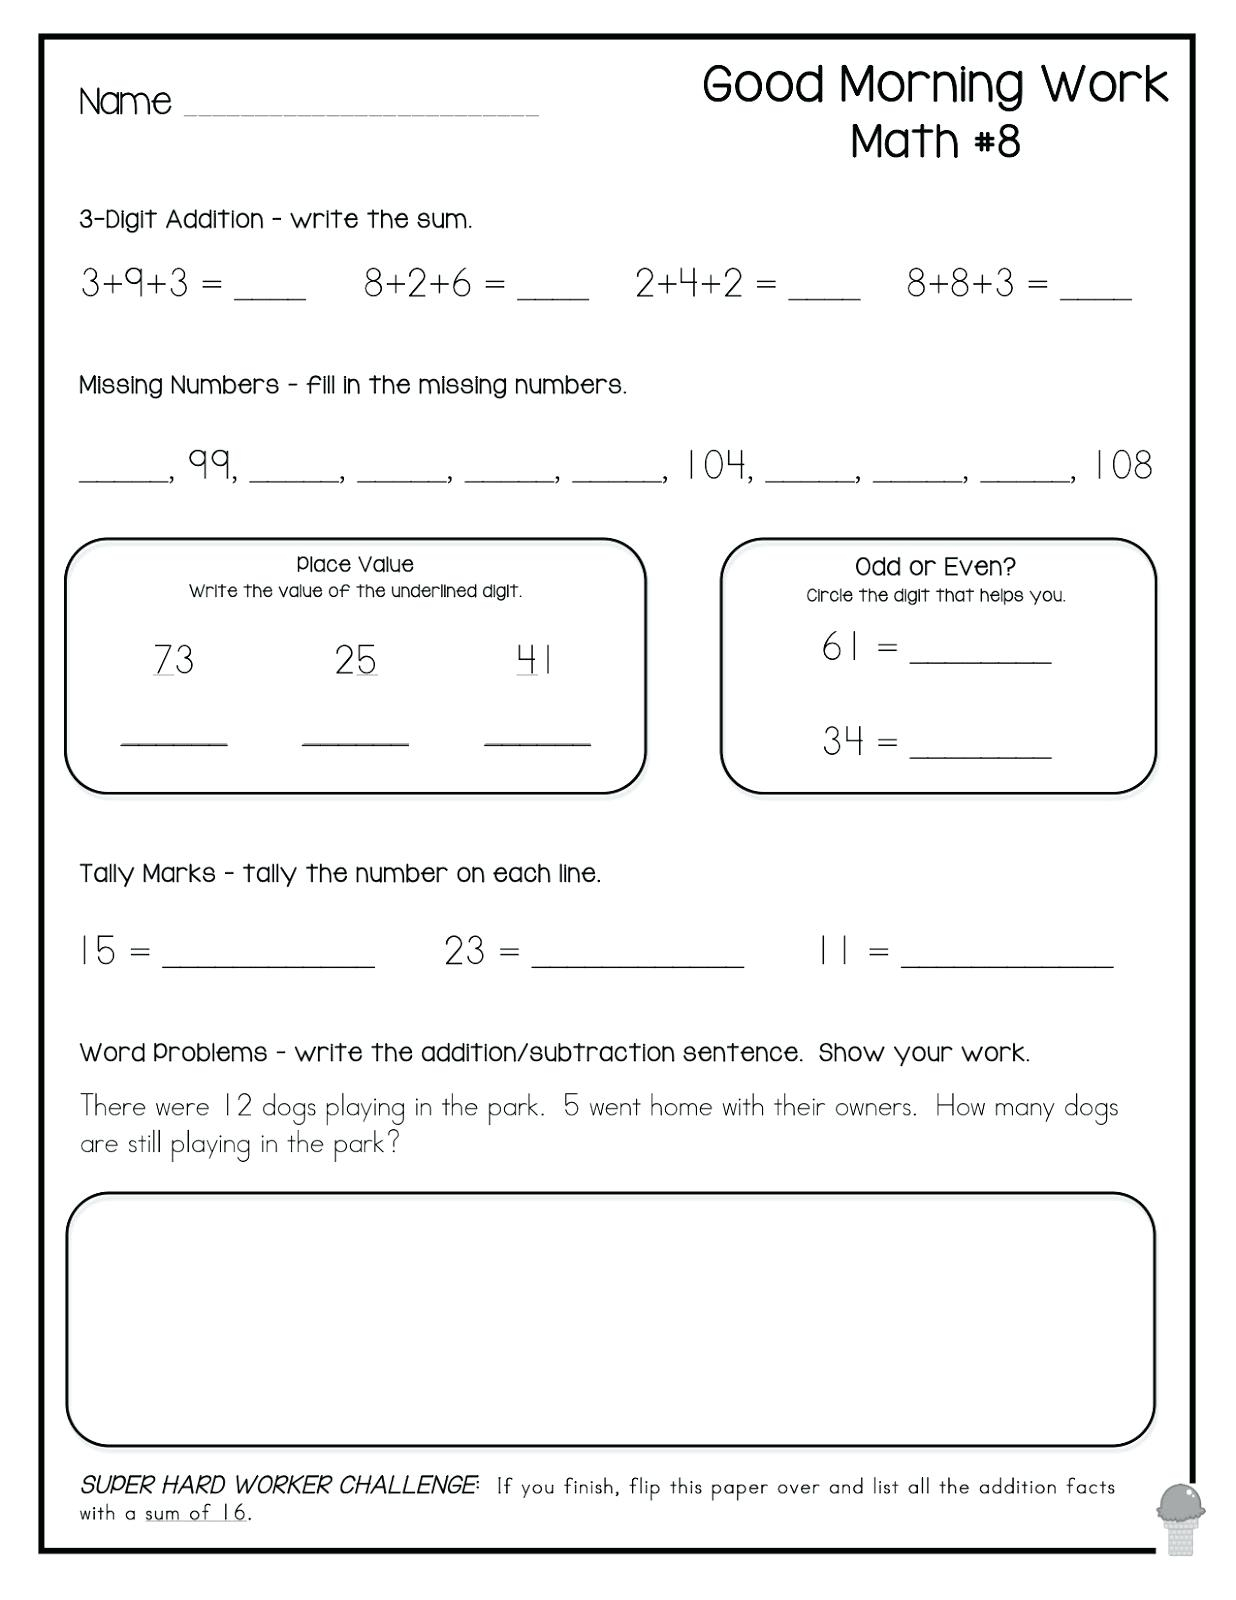 Brain Game Worksheets Printable Brain Game Worksheets – Myheartbeats - Free Printable Brain Teasers Adults